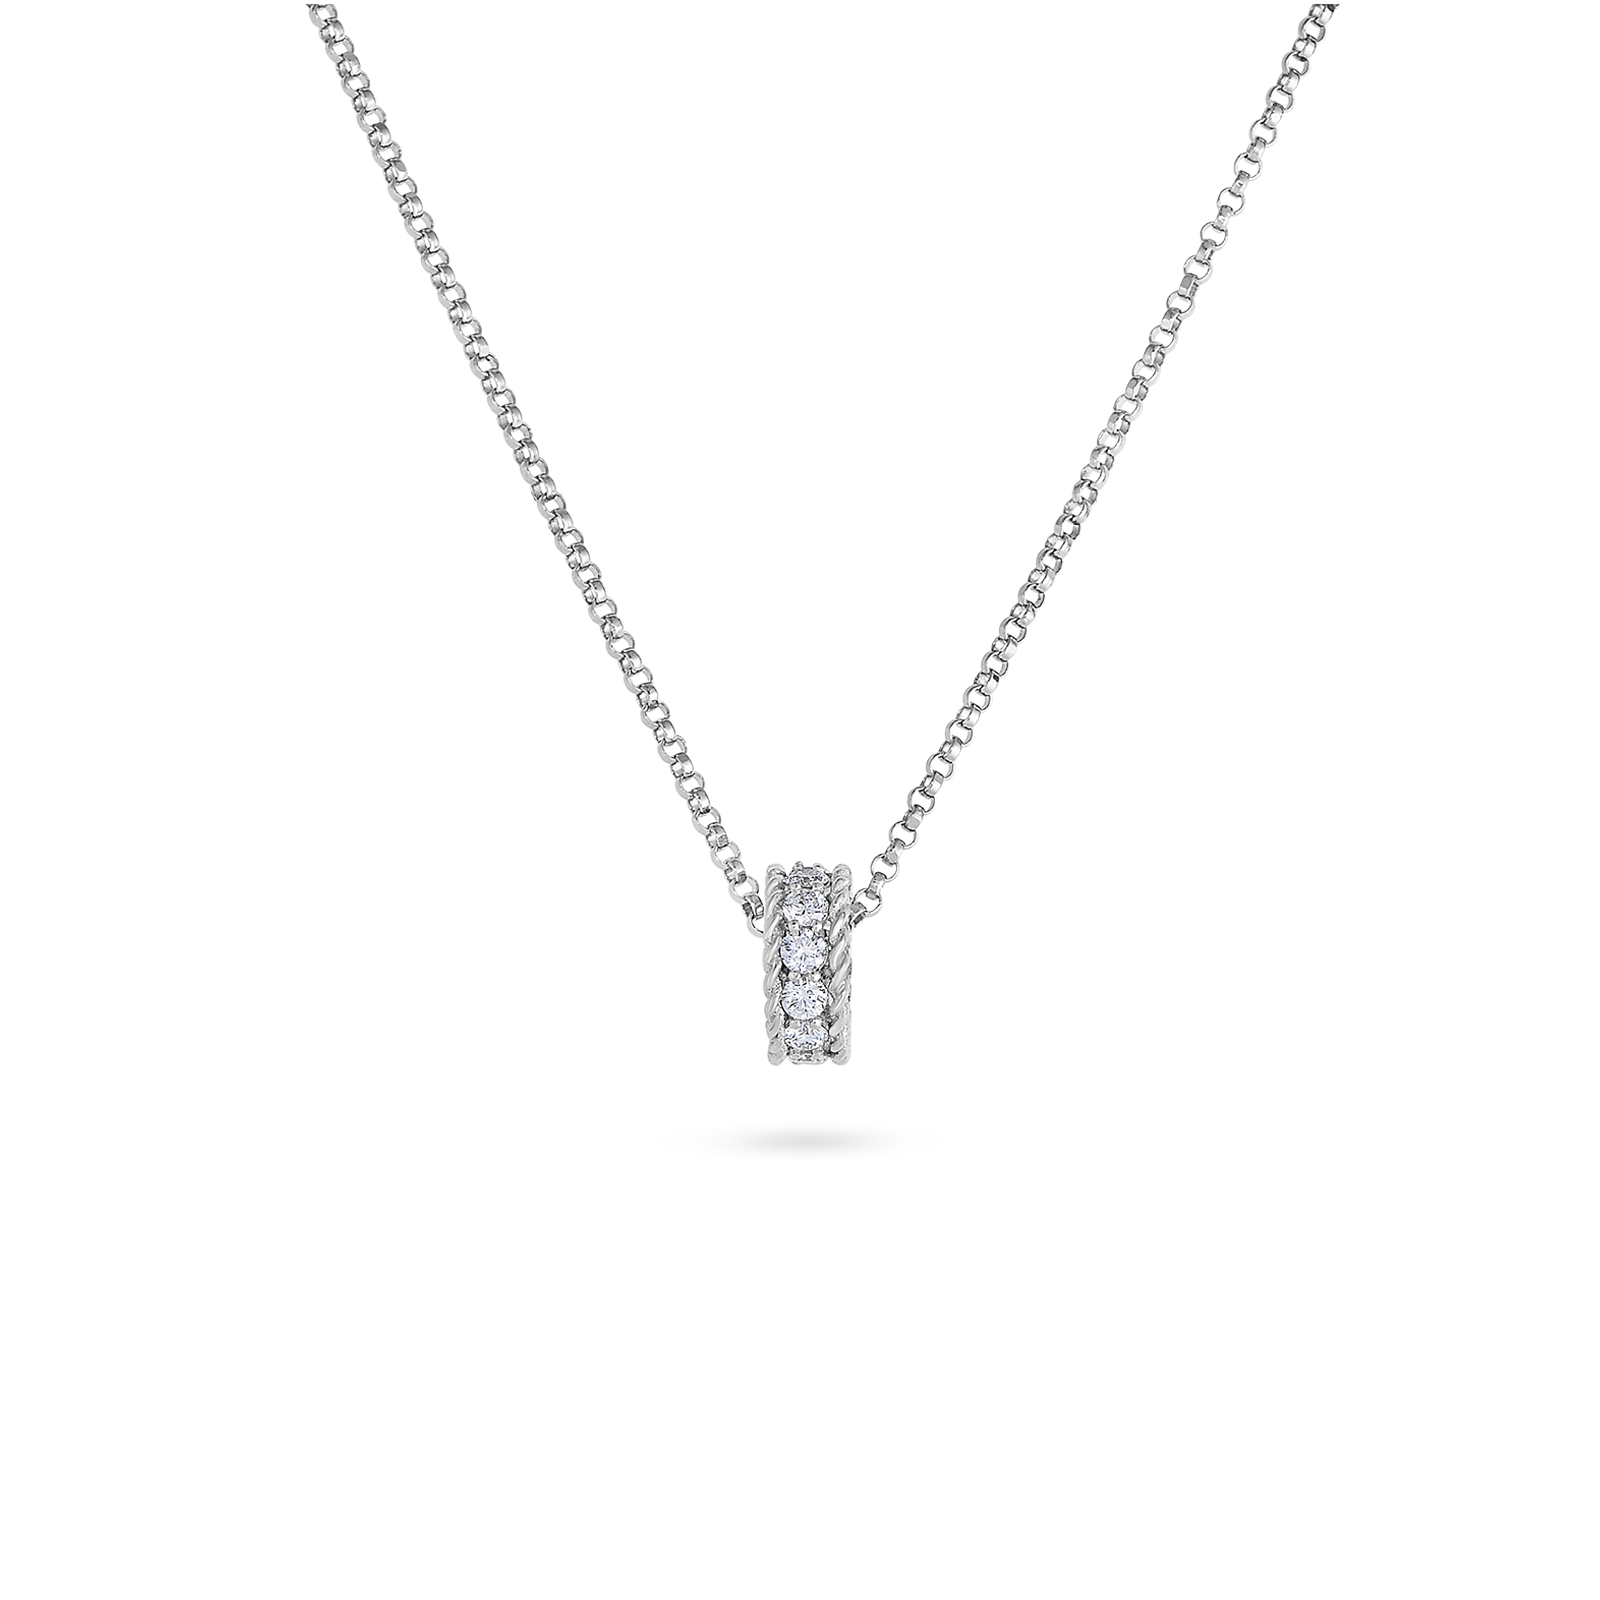 diamonds medium product page with bargen designers jewelry s pendant coin von roberto category